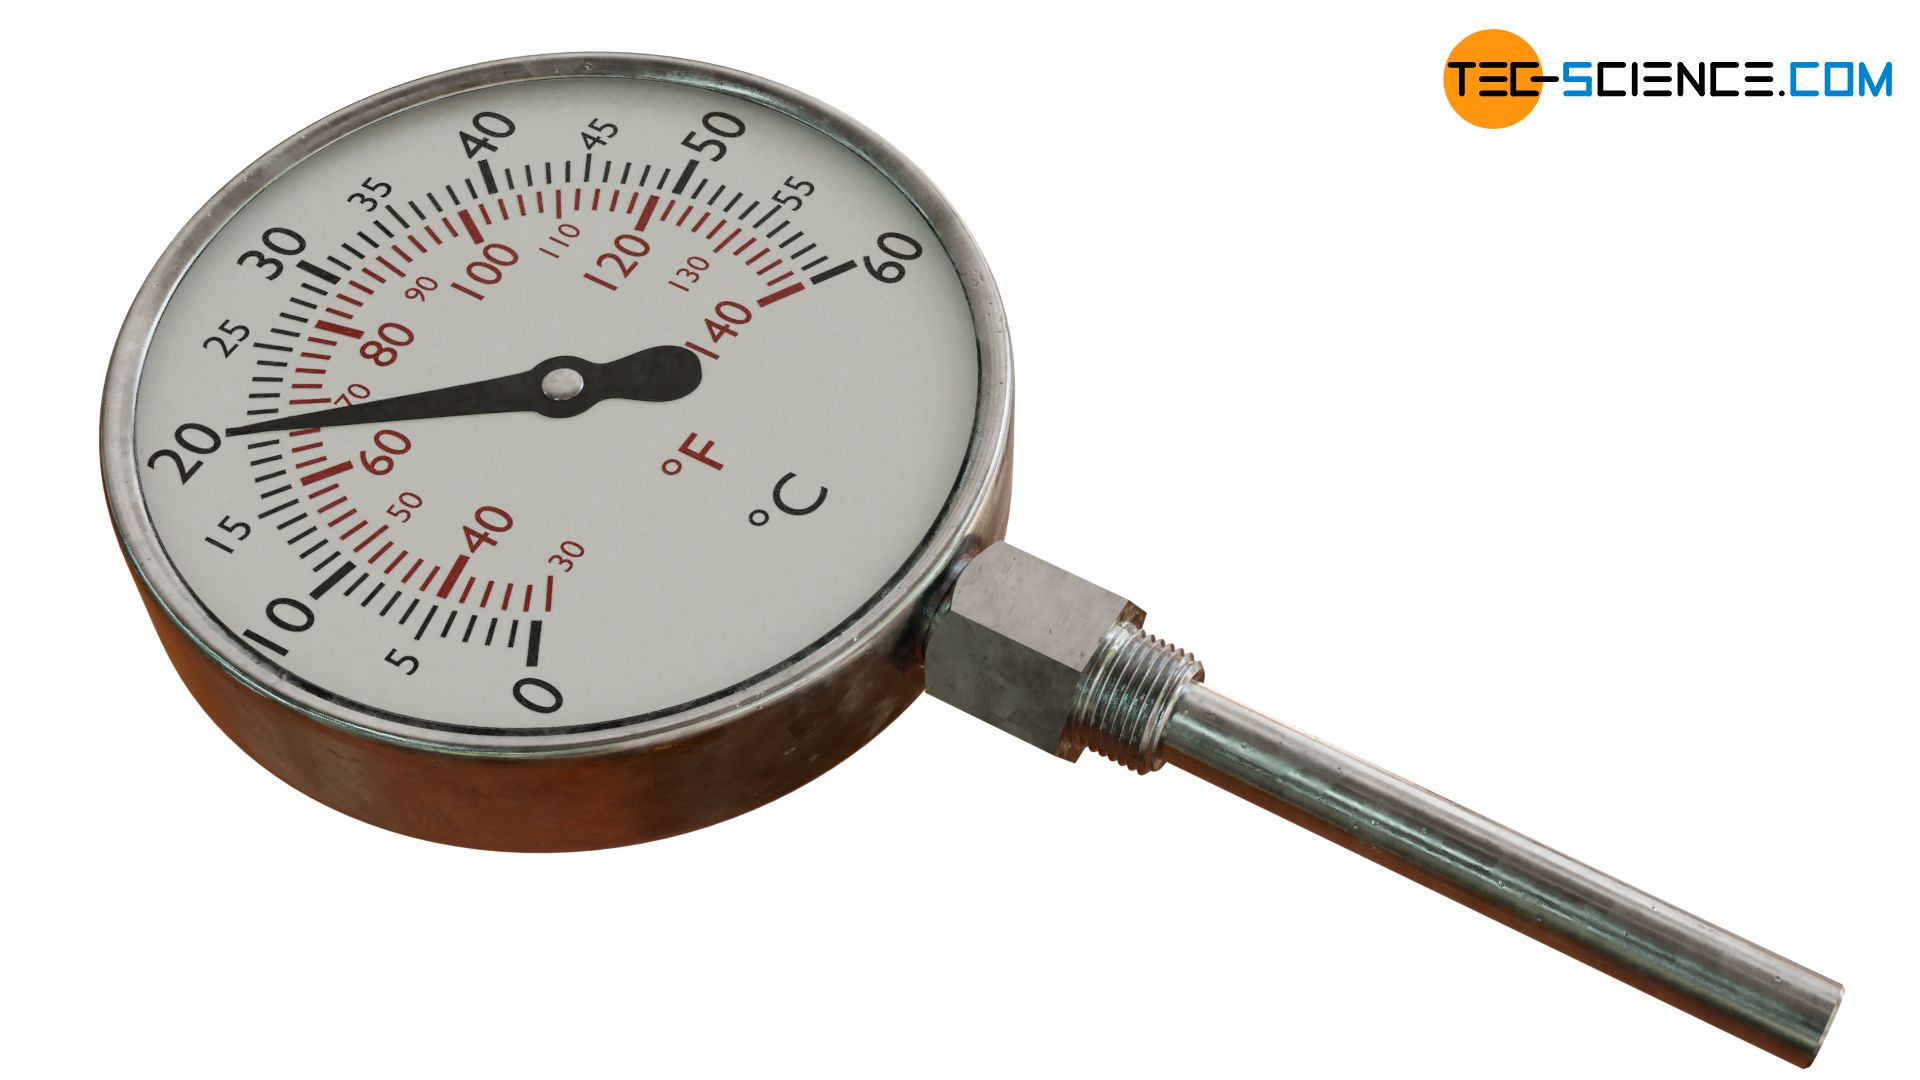 Gas filled thermometer (gas-in-metal thermometer)